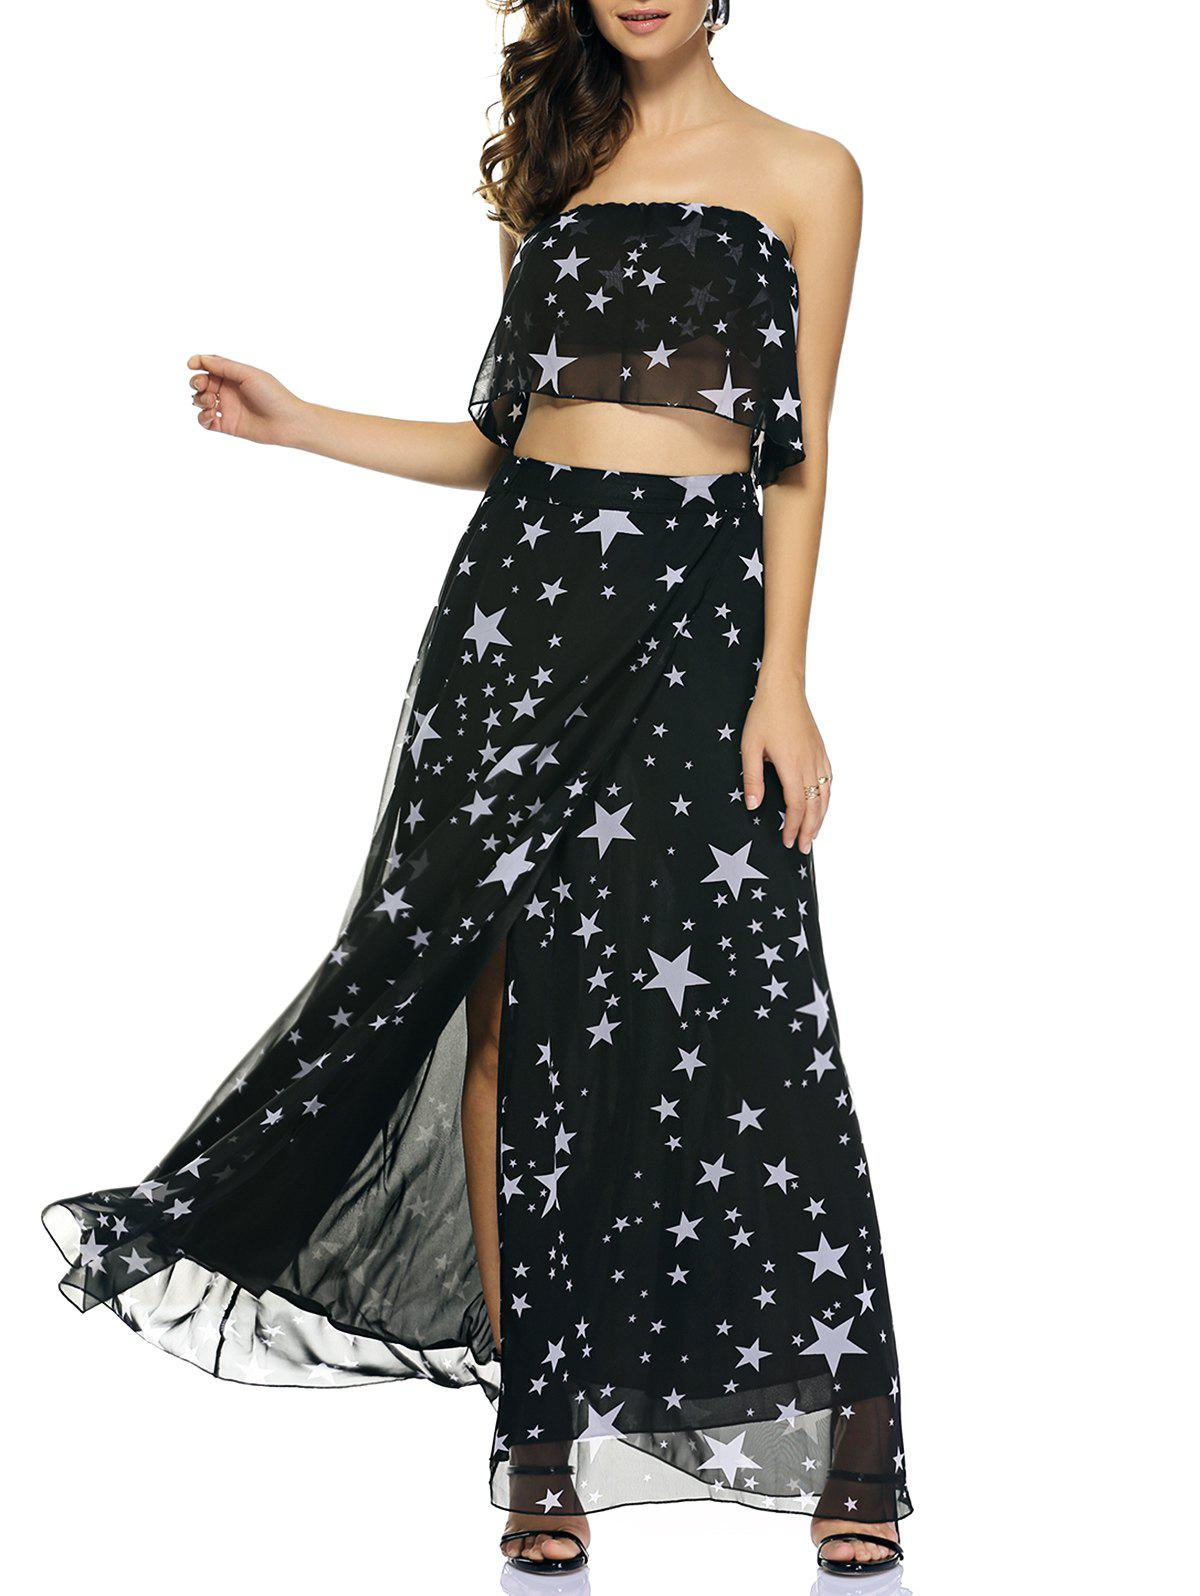 Chic Star Print Tube Top + High Slit Skirt - BLACK 2XL